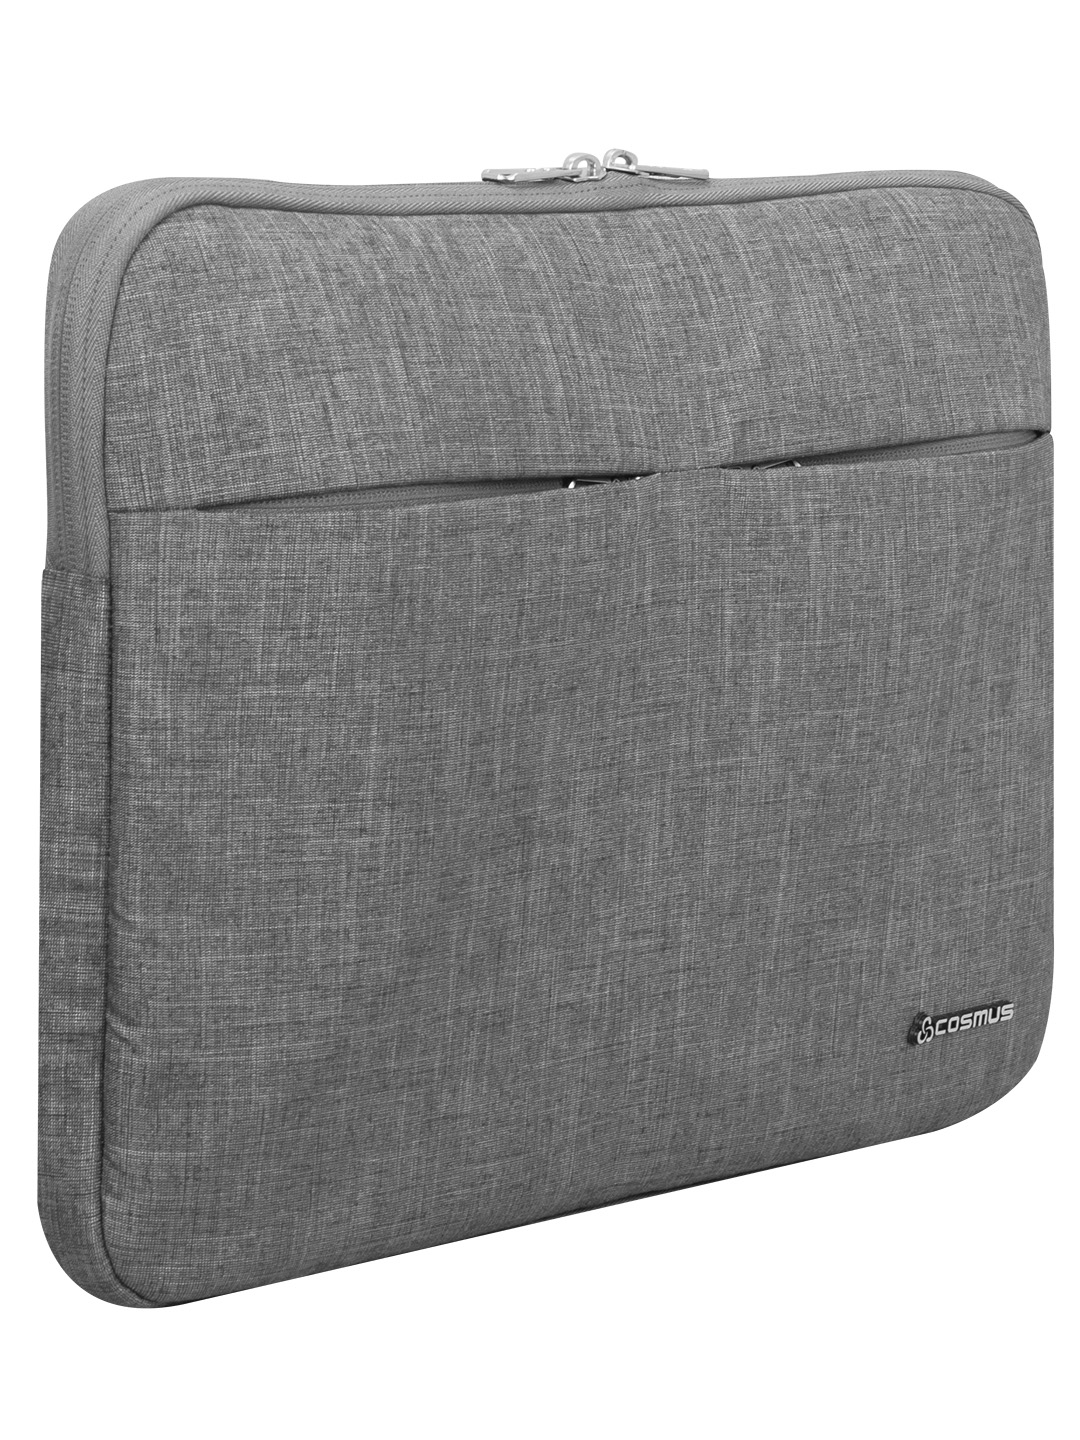 Affinity Grey Laptop Sleeve for up to 15.6 inches Laptop